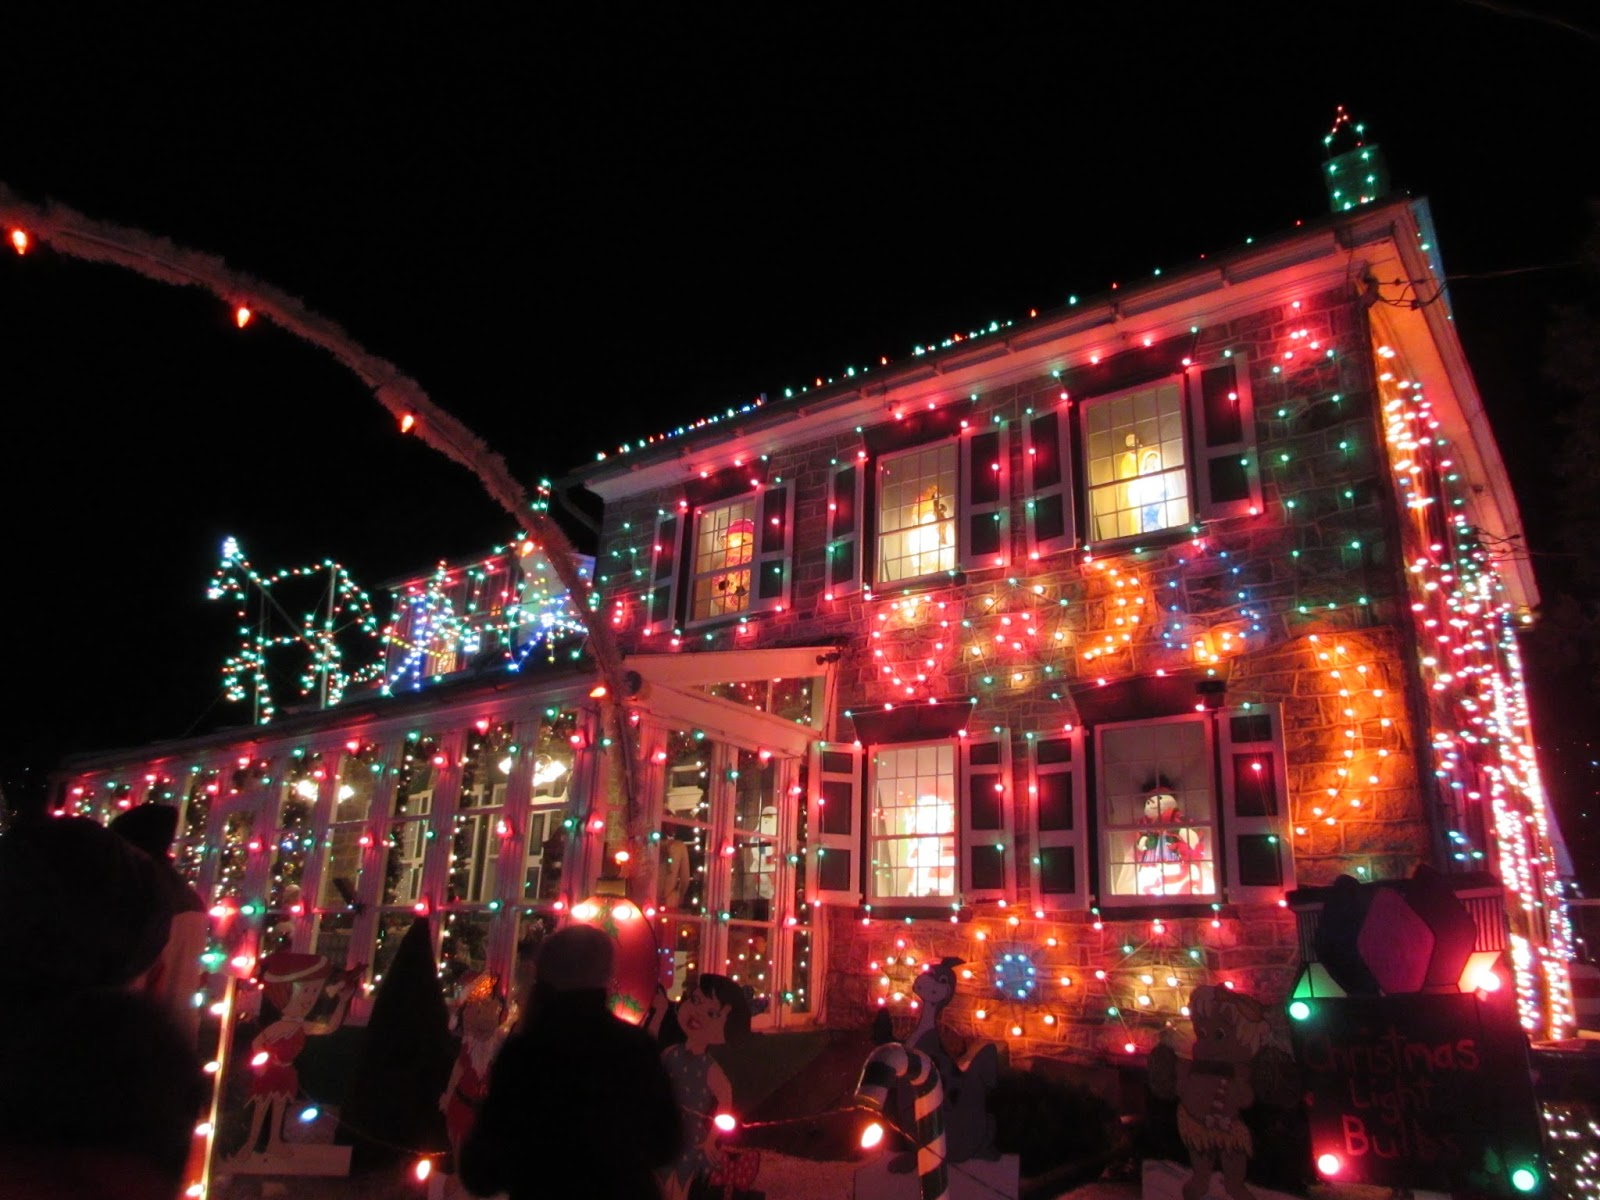 overall we highly recommend visiting koziars christmas village their collection of displays is incredible and one of a kind and it is a very affordable